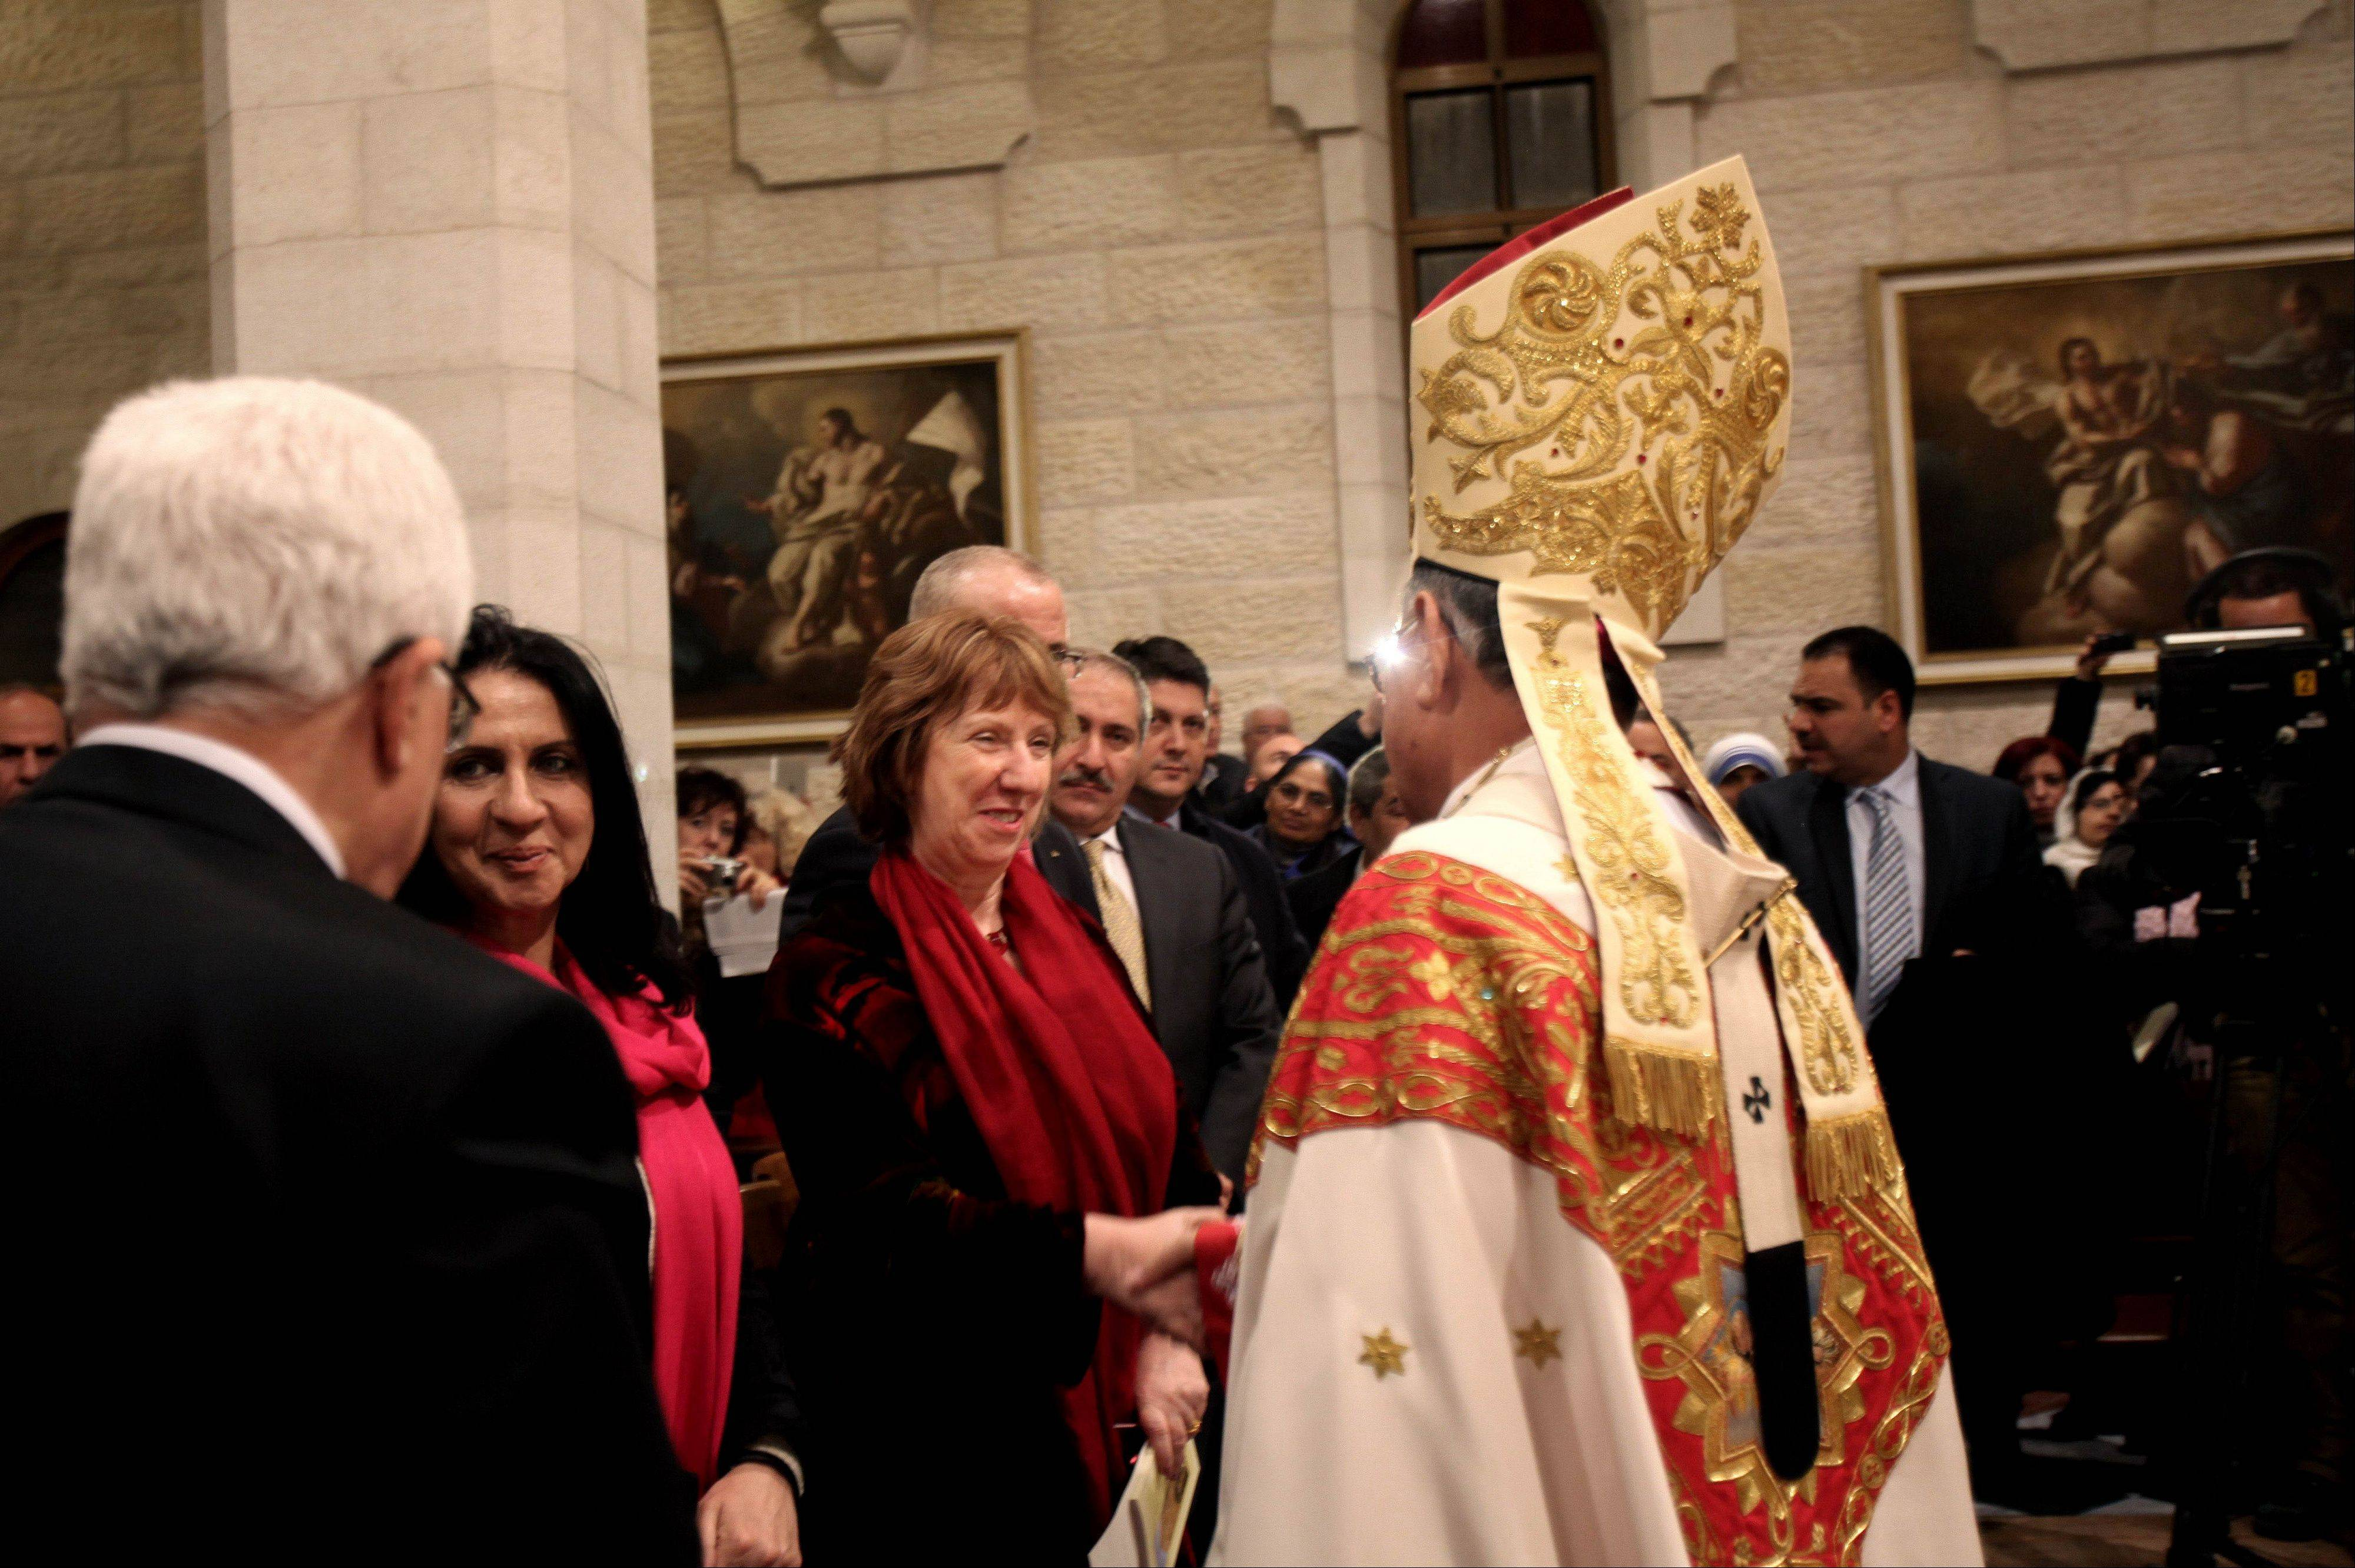 EU foreign policy chief Catherine Ashton, shakes hands with Latin Patriarch of Jerusalem, Fouad Twal, during midnight Christmas mass at the Church of Nativity, traditionally believed by Christians to be the birthplace of Jesus Christ, in the West Bank town of Bethlehem on Christmas Eve, Wednesday, Dec. 25, 2013.